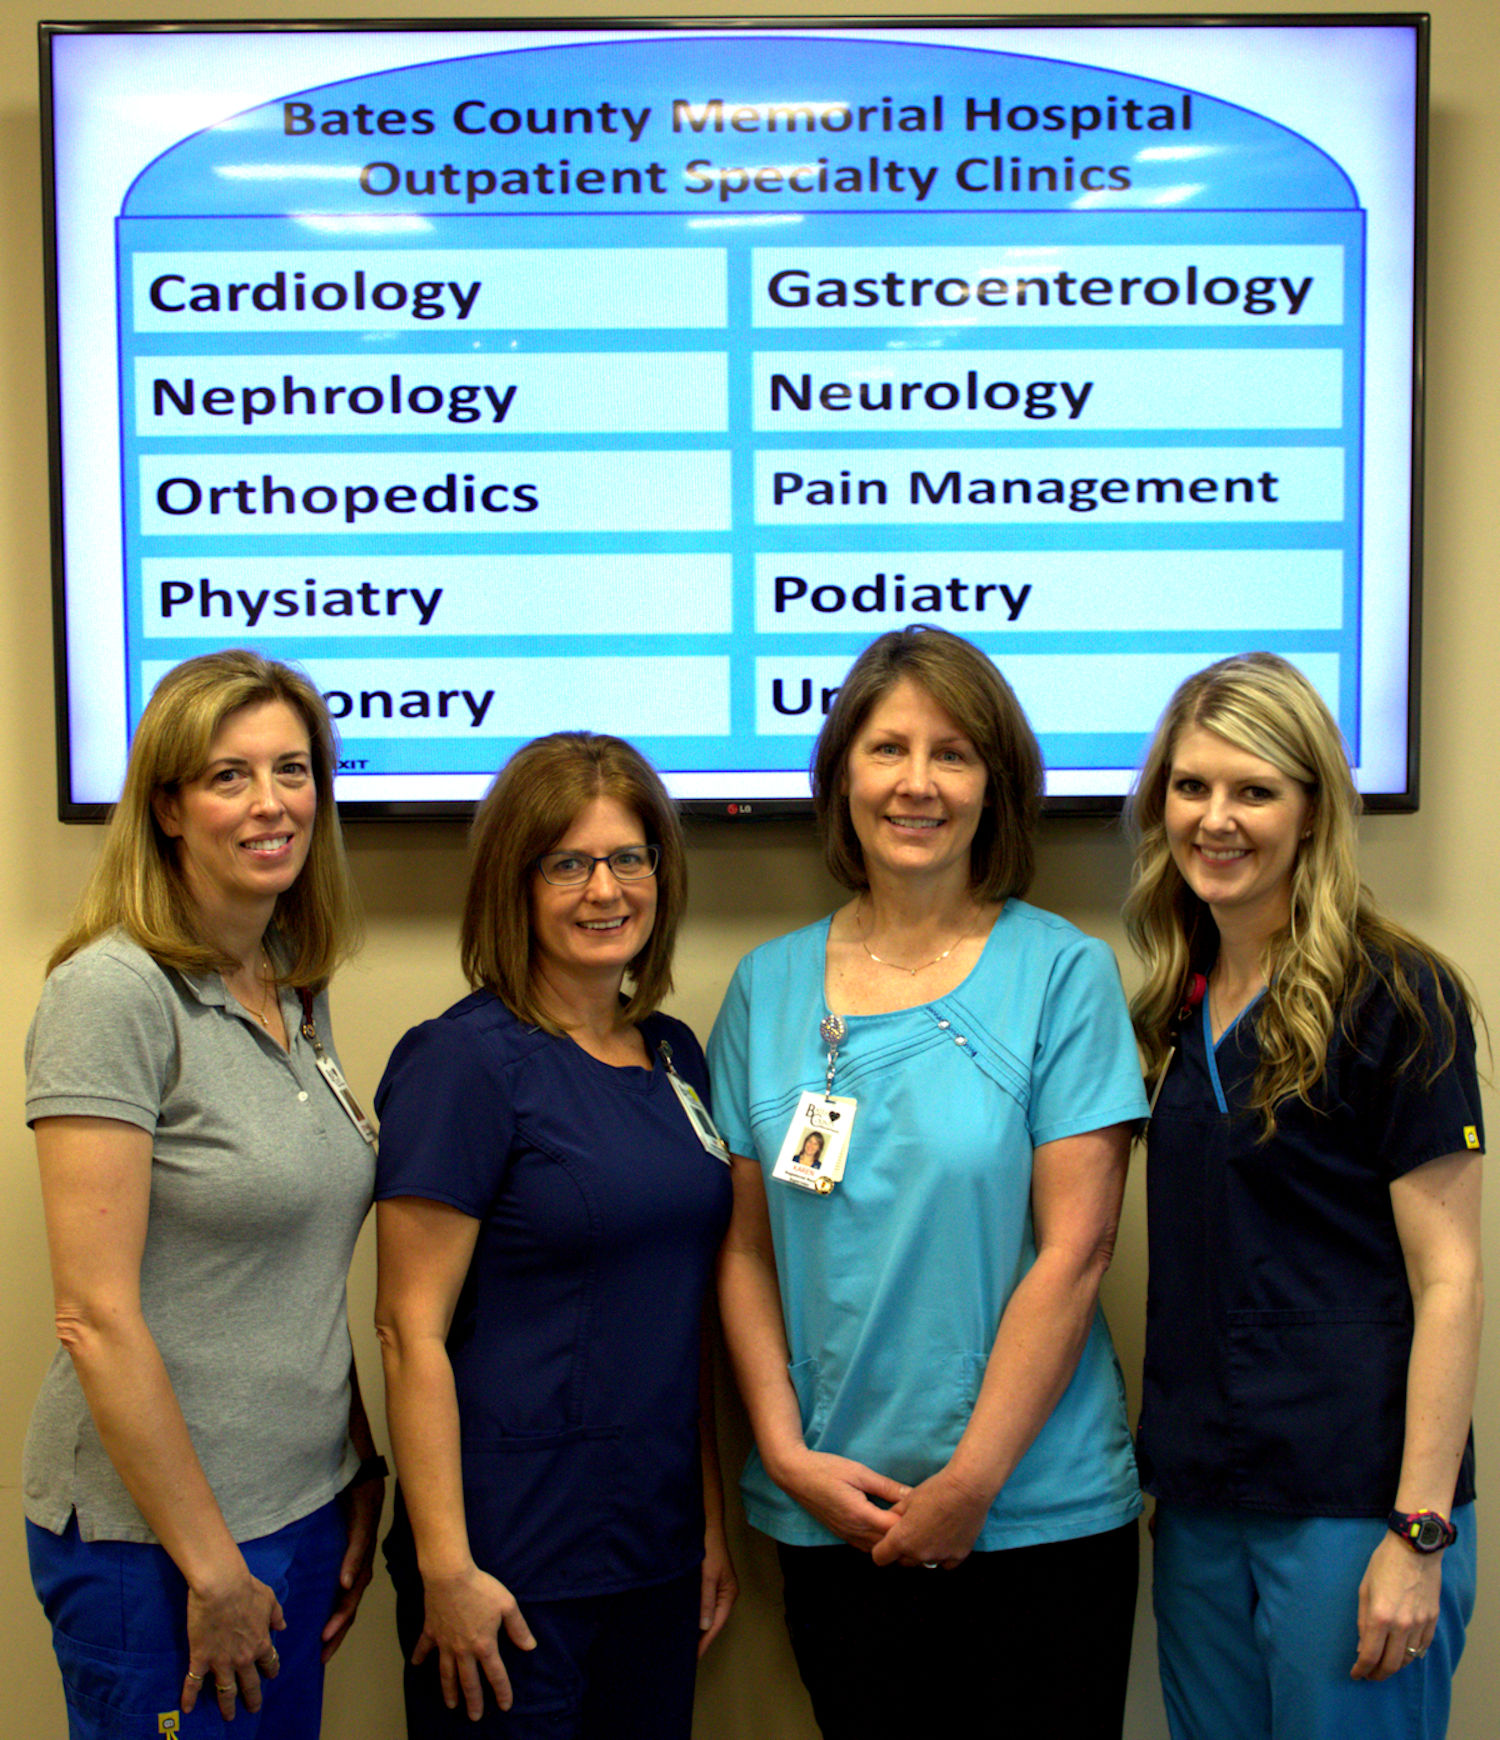 Outpatients Specialty Clinics